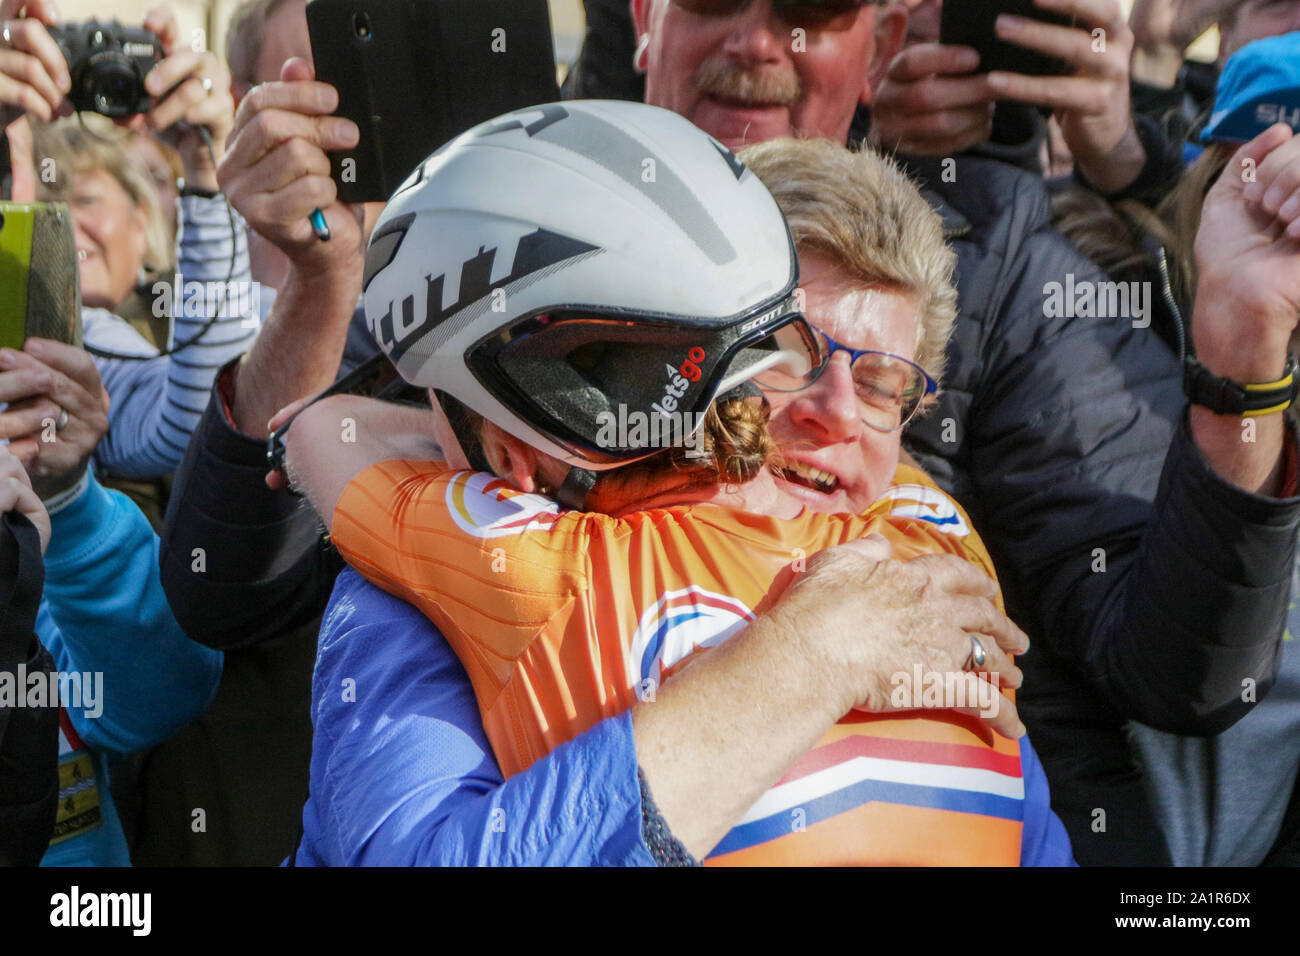 Harrogate, UK. 28th Sep, 2019. Annemiek Van Vleuten of the Netherlands celebrates with family after taking Gold in the 2019 UCI Road World Championships Womens Elite Road Race. September 28, 2019 Credit Dan-Cooke/Alamy Live News Stock Photo